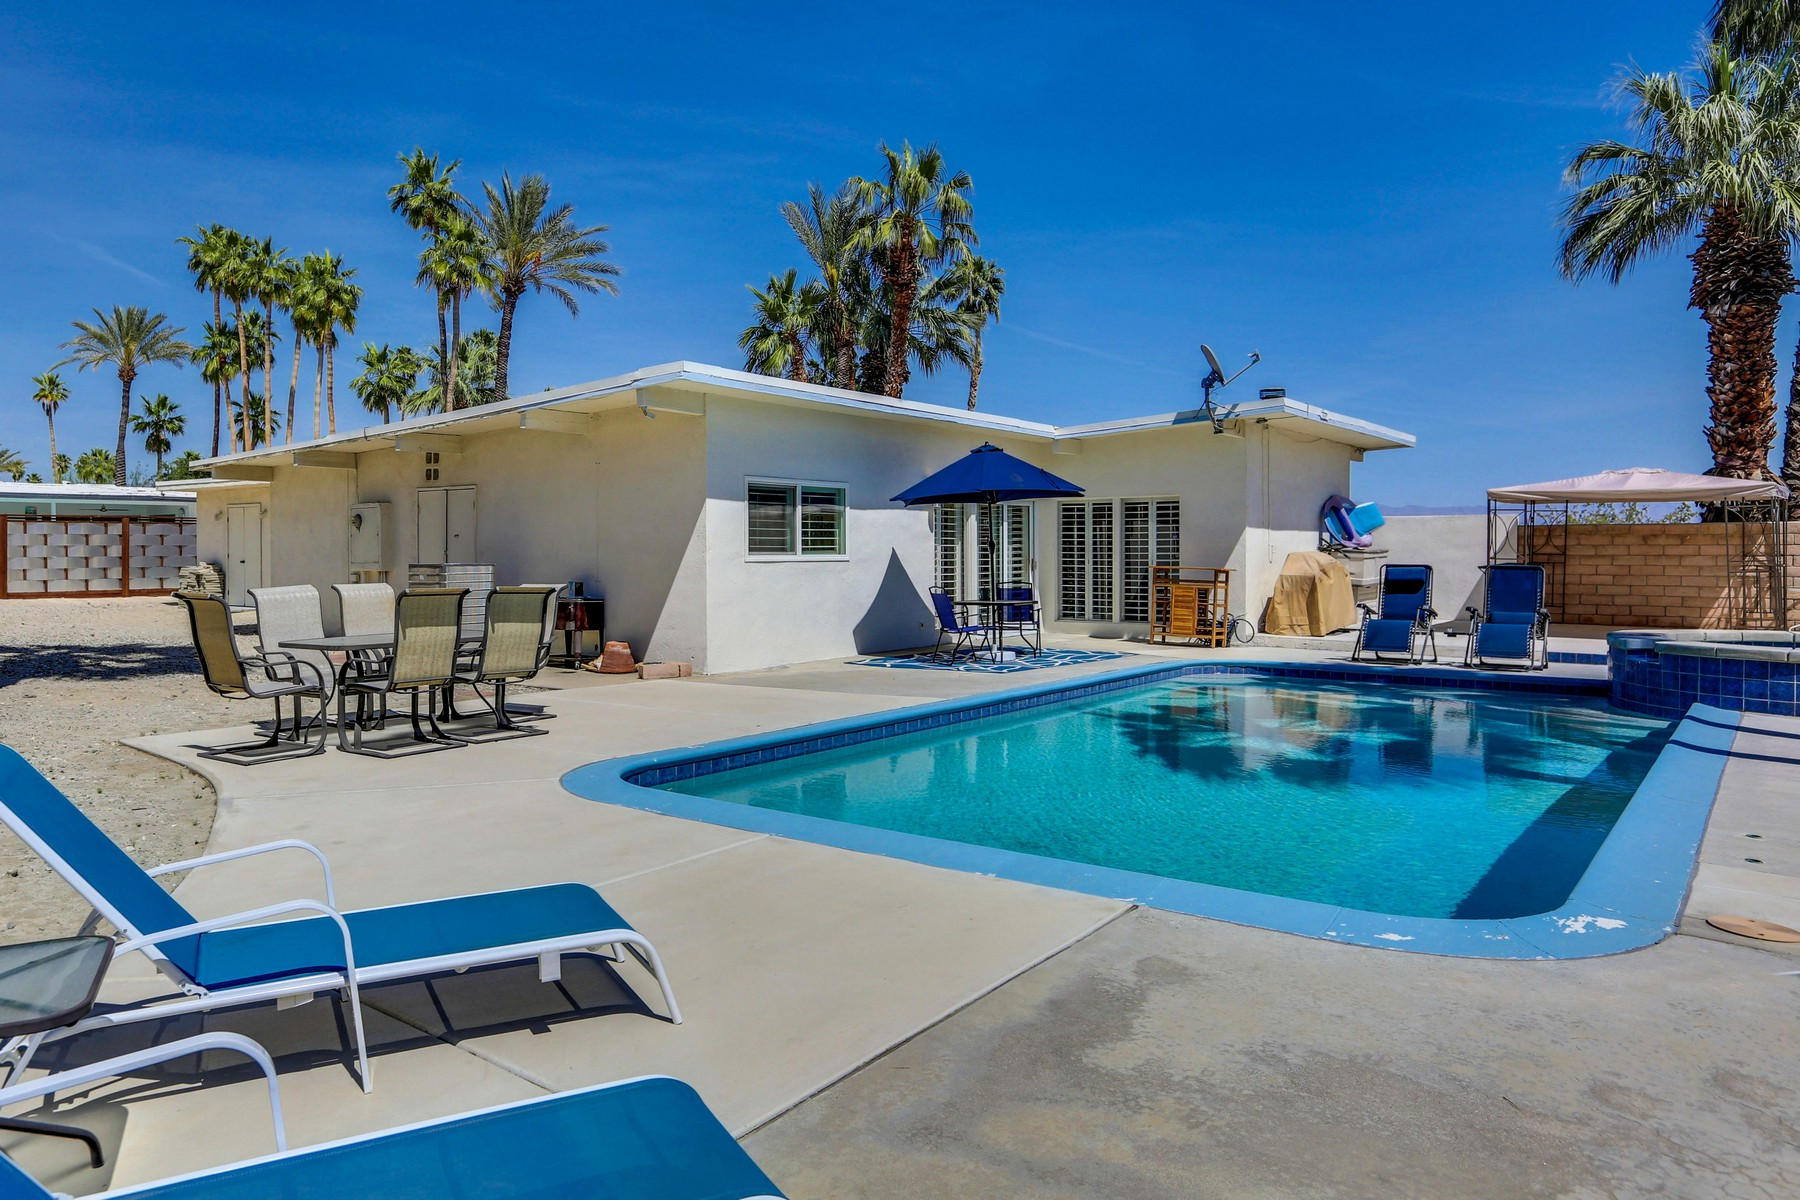 Single Family Home for Sale at 567 N Juanita Palm Springs, California, 92262 United States